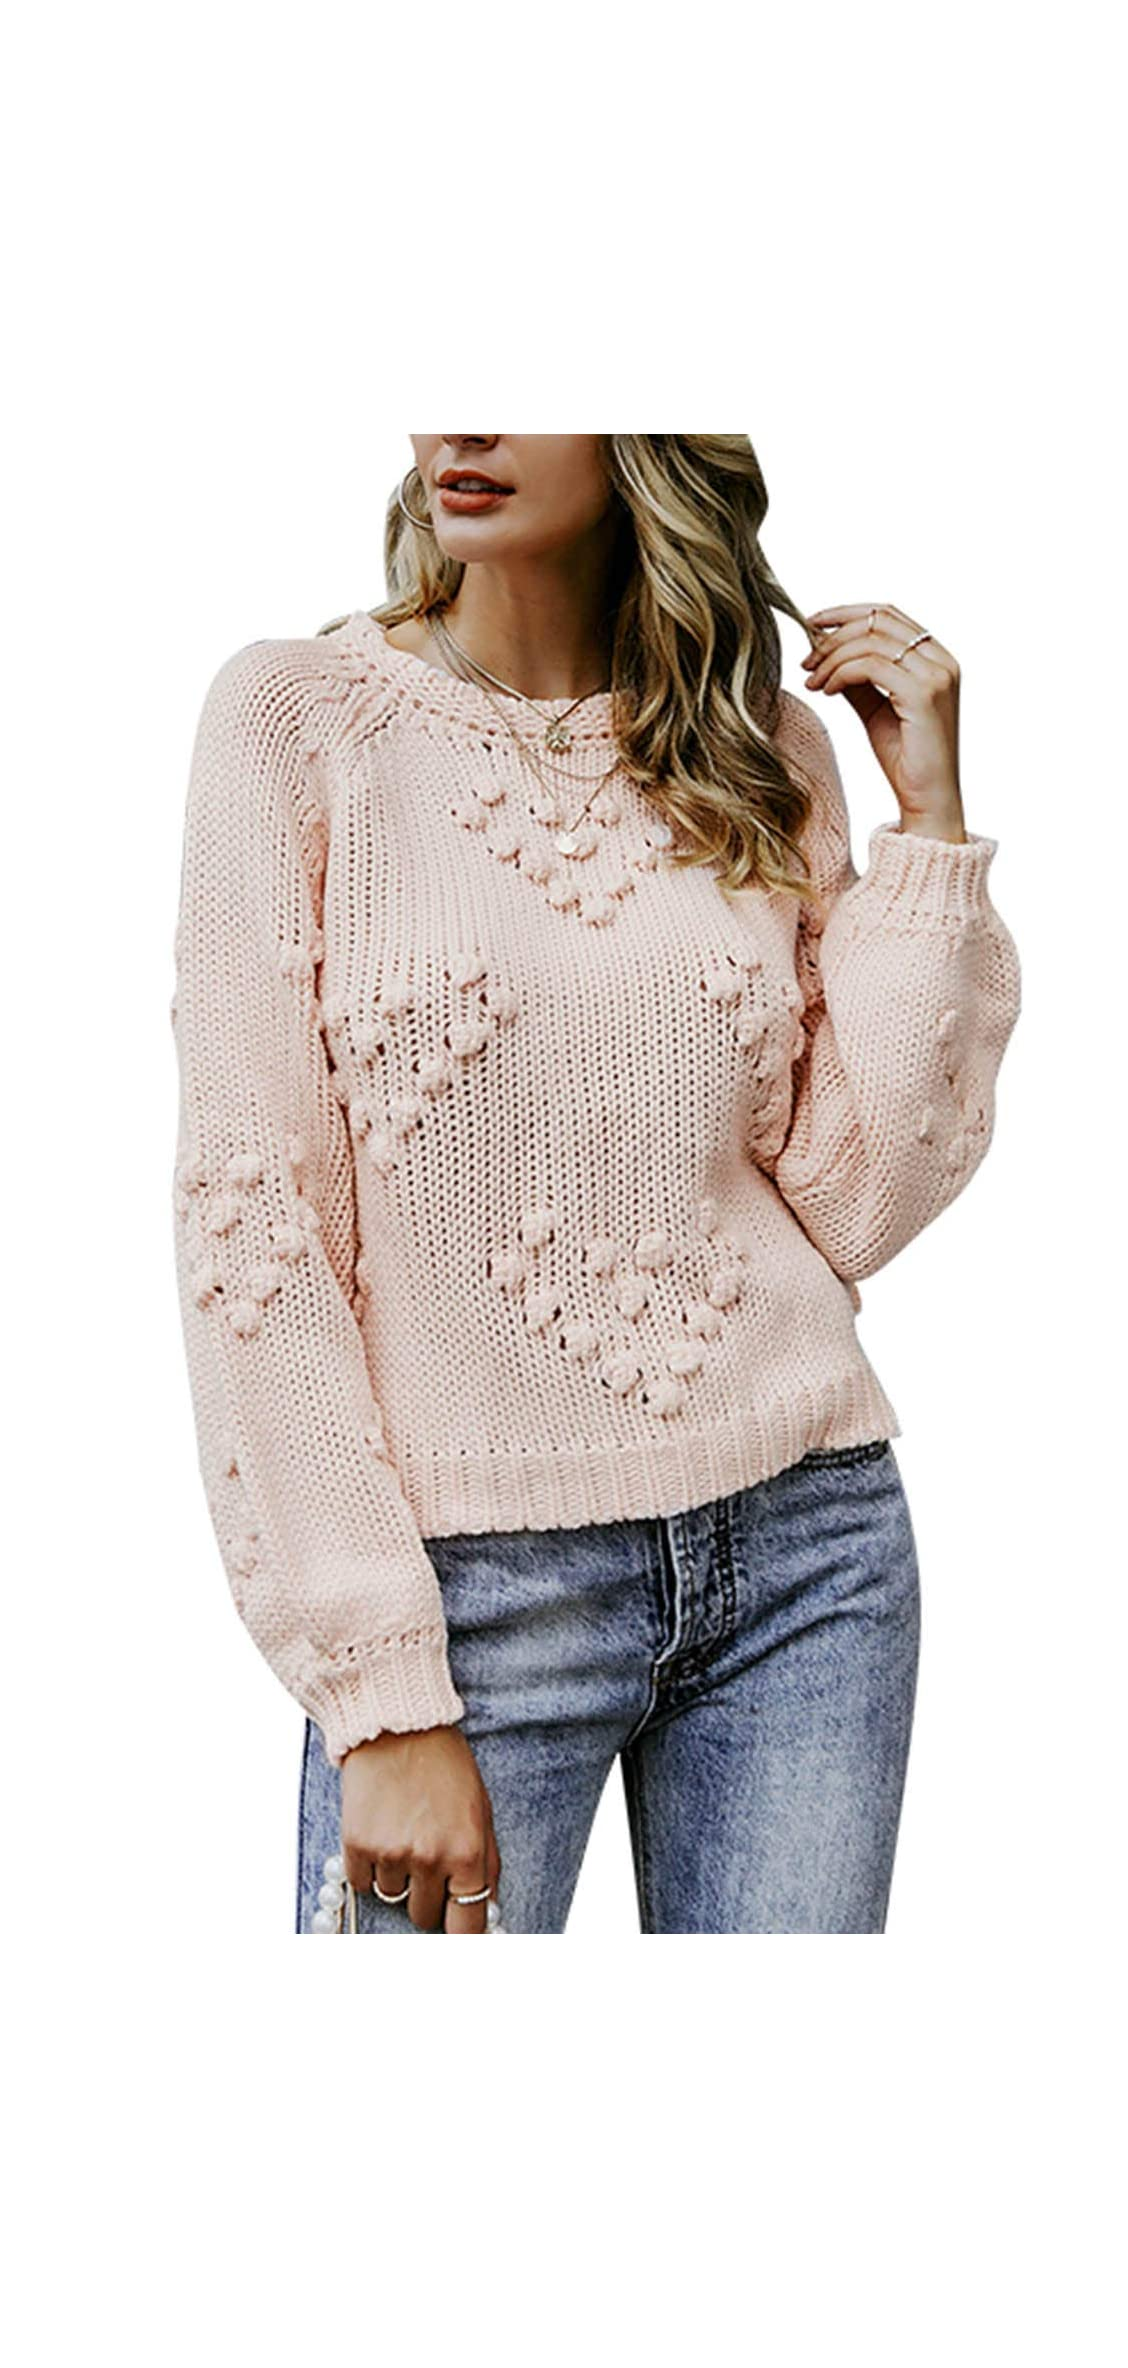 Simplee Women's Loose Drop Shoulder Sleeve Knitted Casual Winter